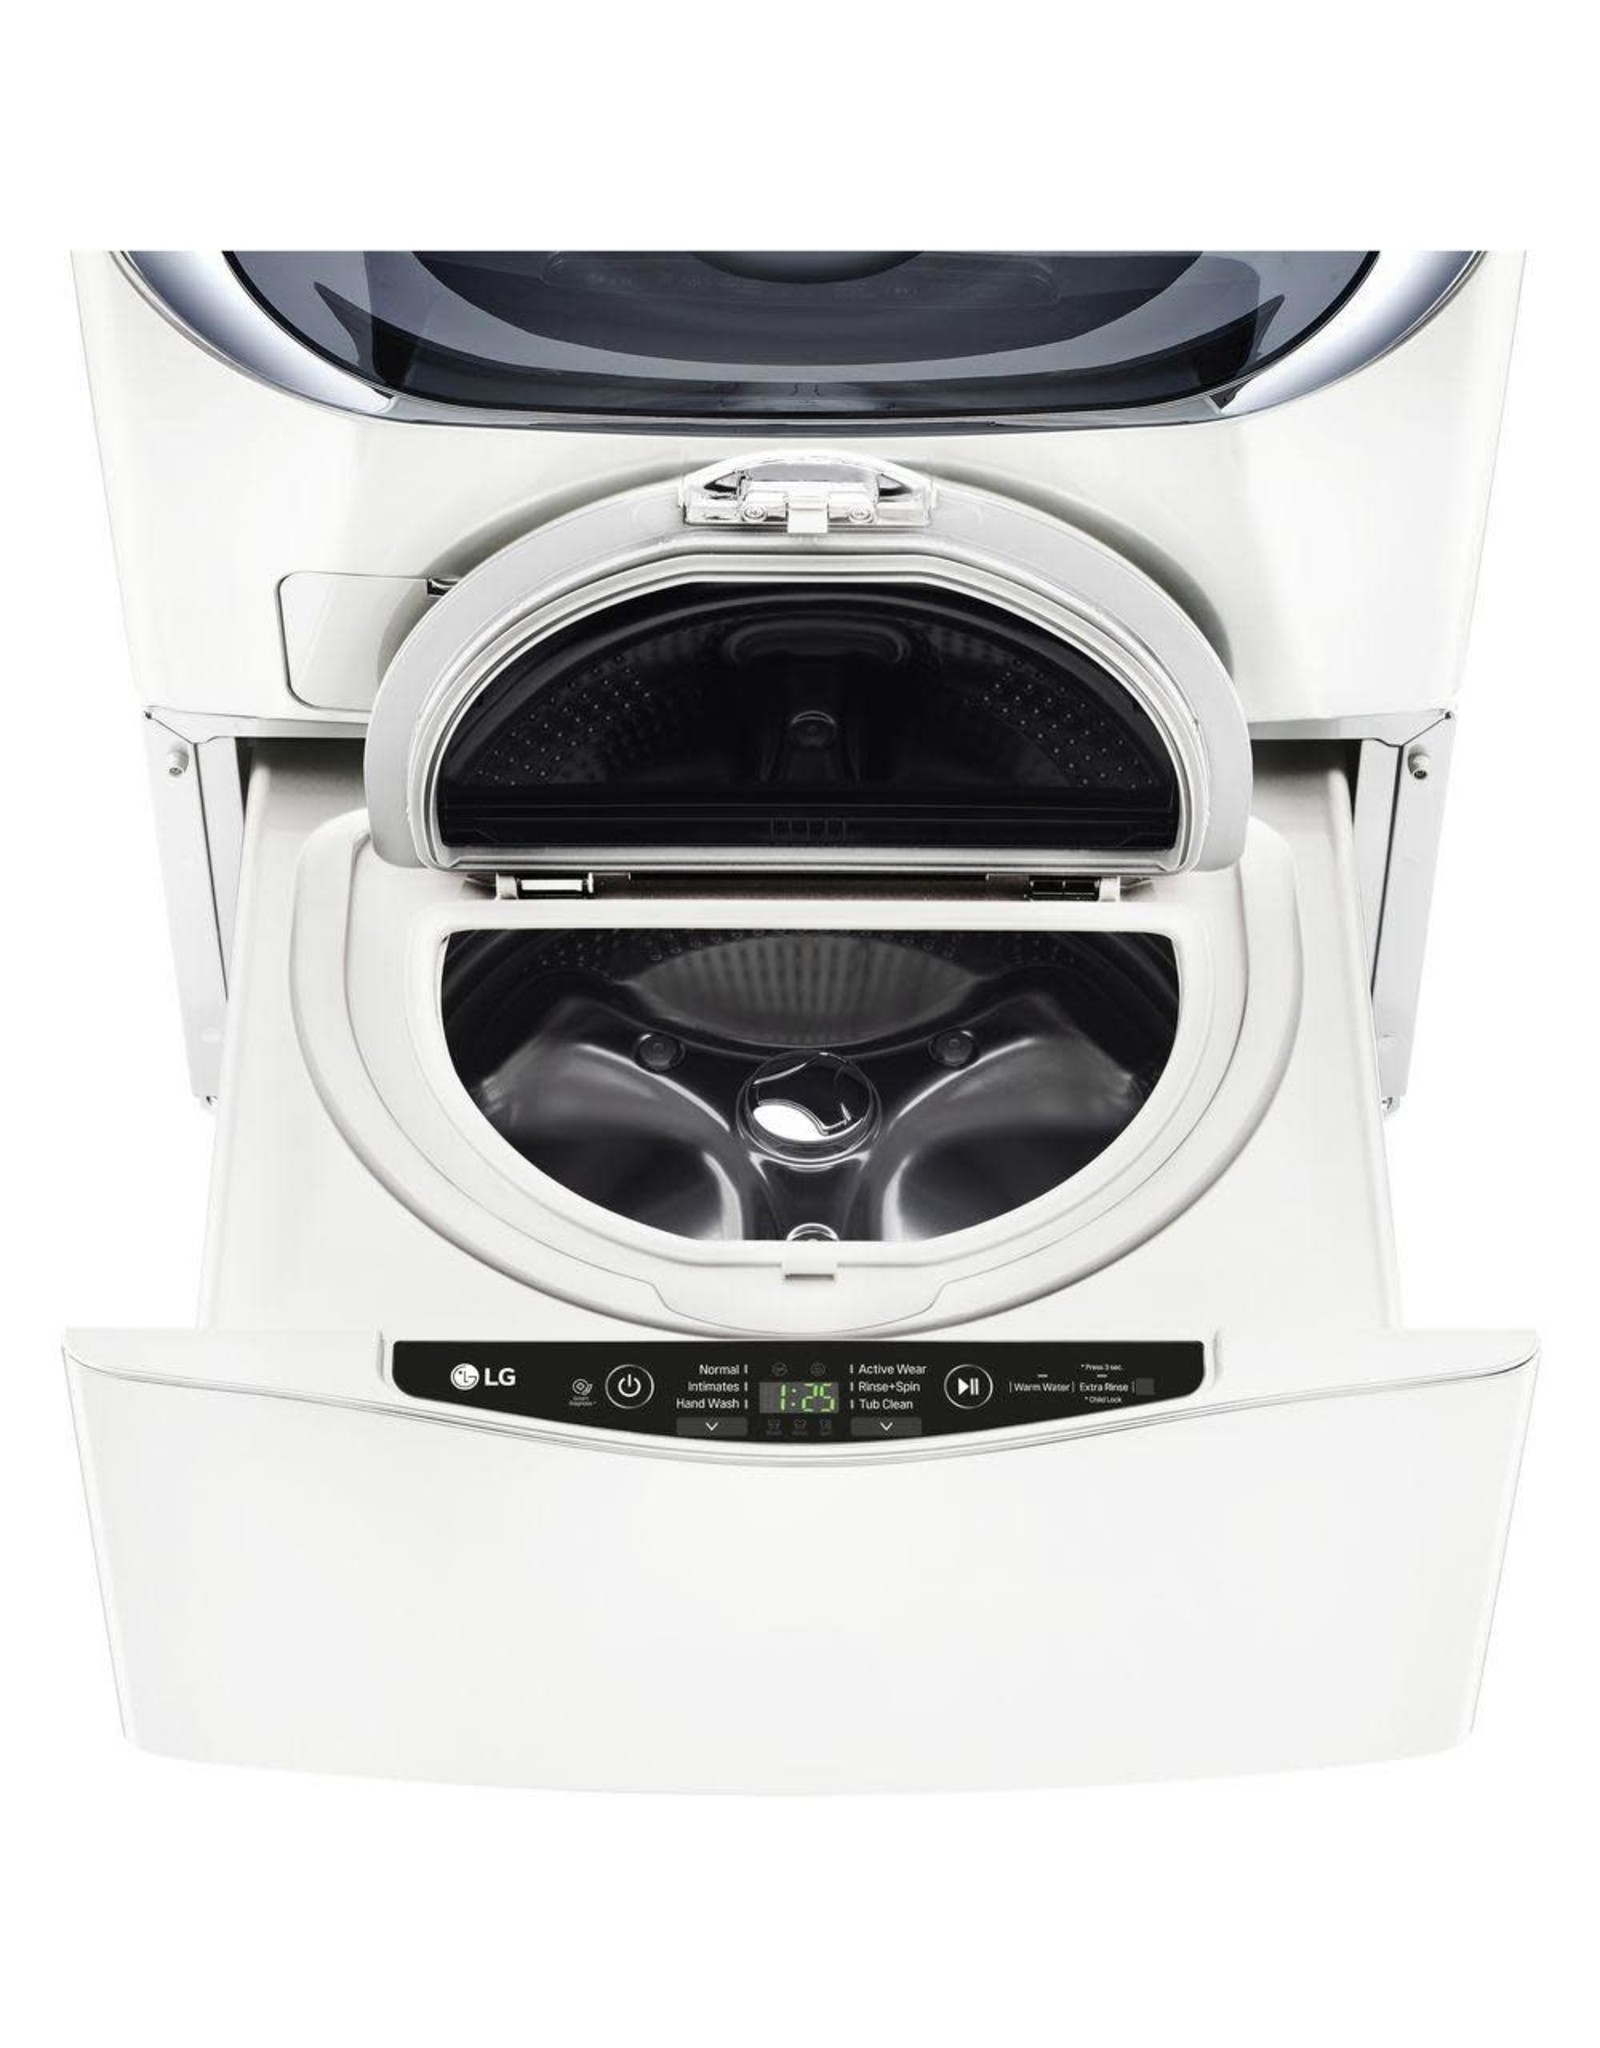 LG Electronics WD100CW 27 in. 1.0 cu. ft. SideKick Pedestal Washer with TWINWash System Compatibility in White